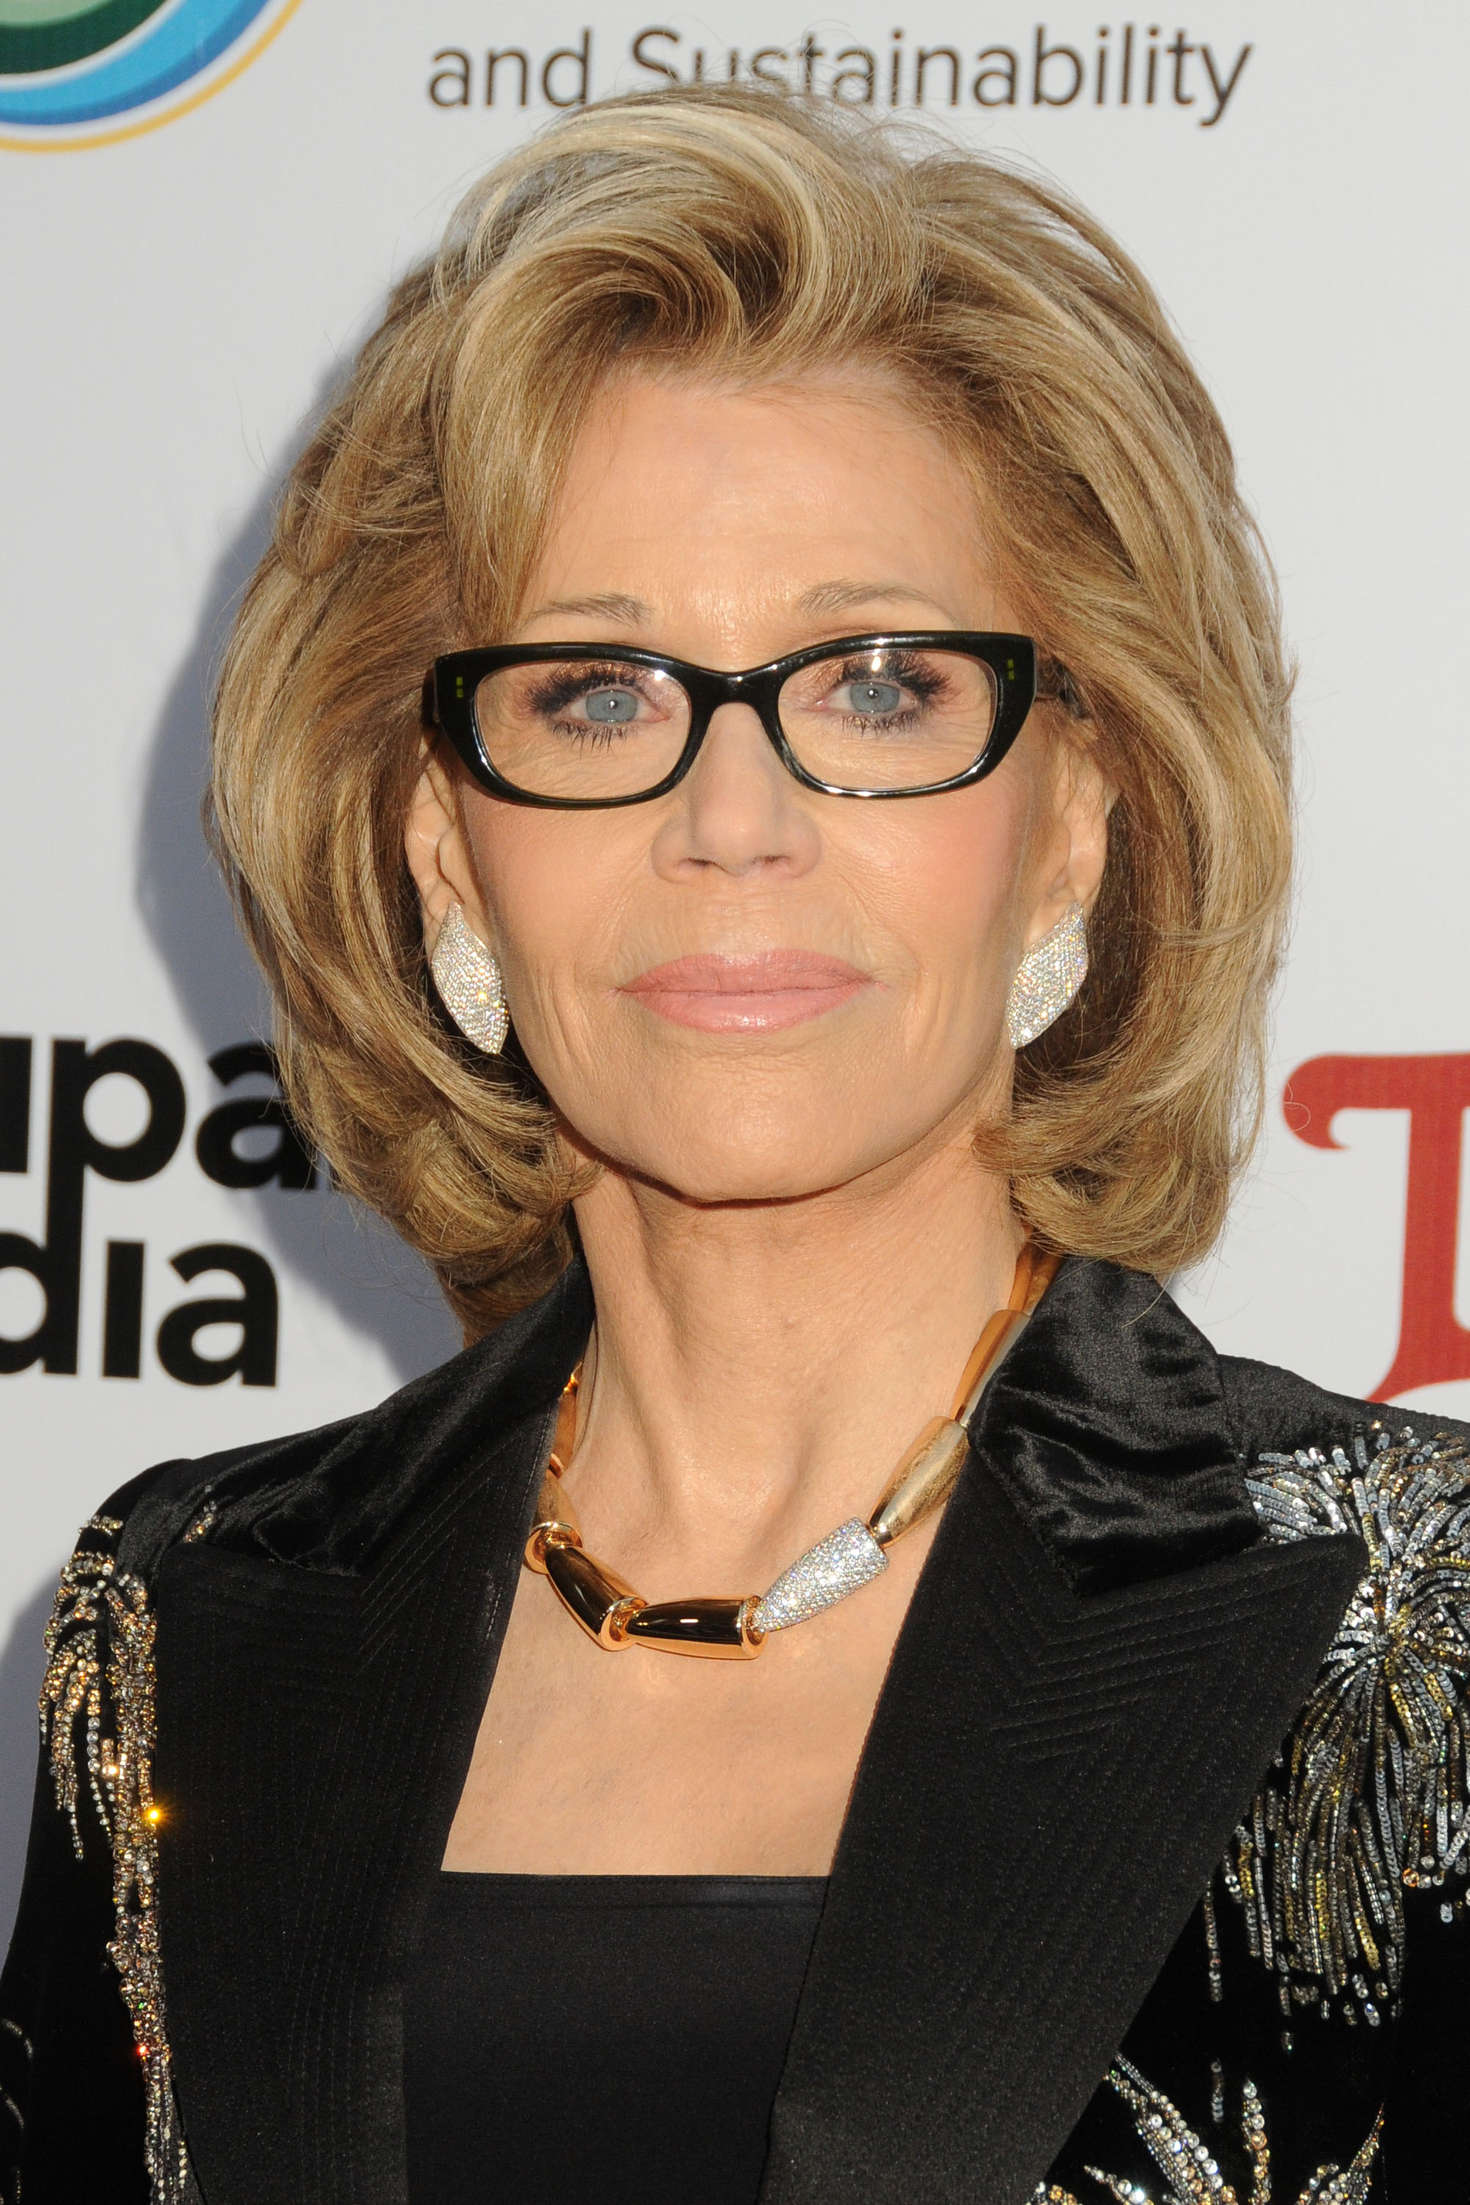 Jane Fonda UCLA Institute of the Environment and Sustainability Gala in Beverly Hills